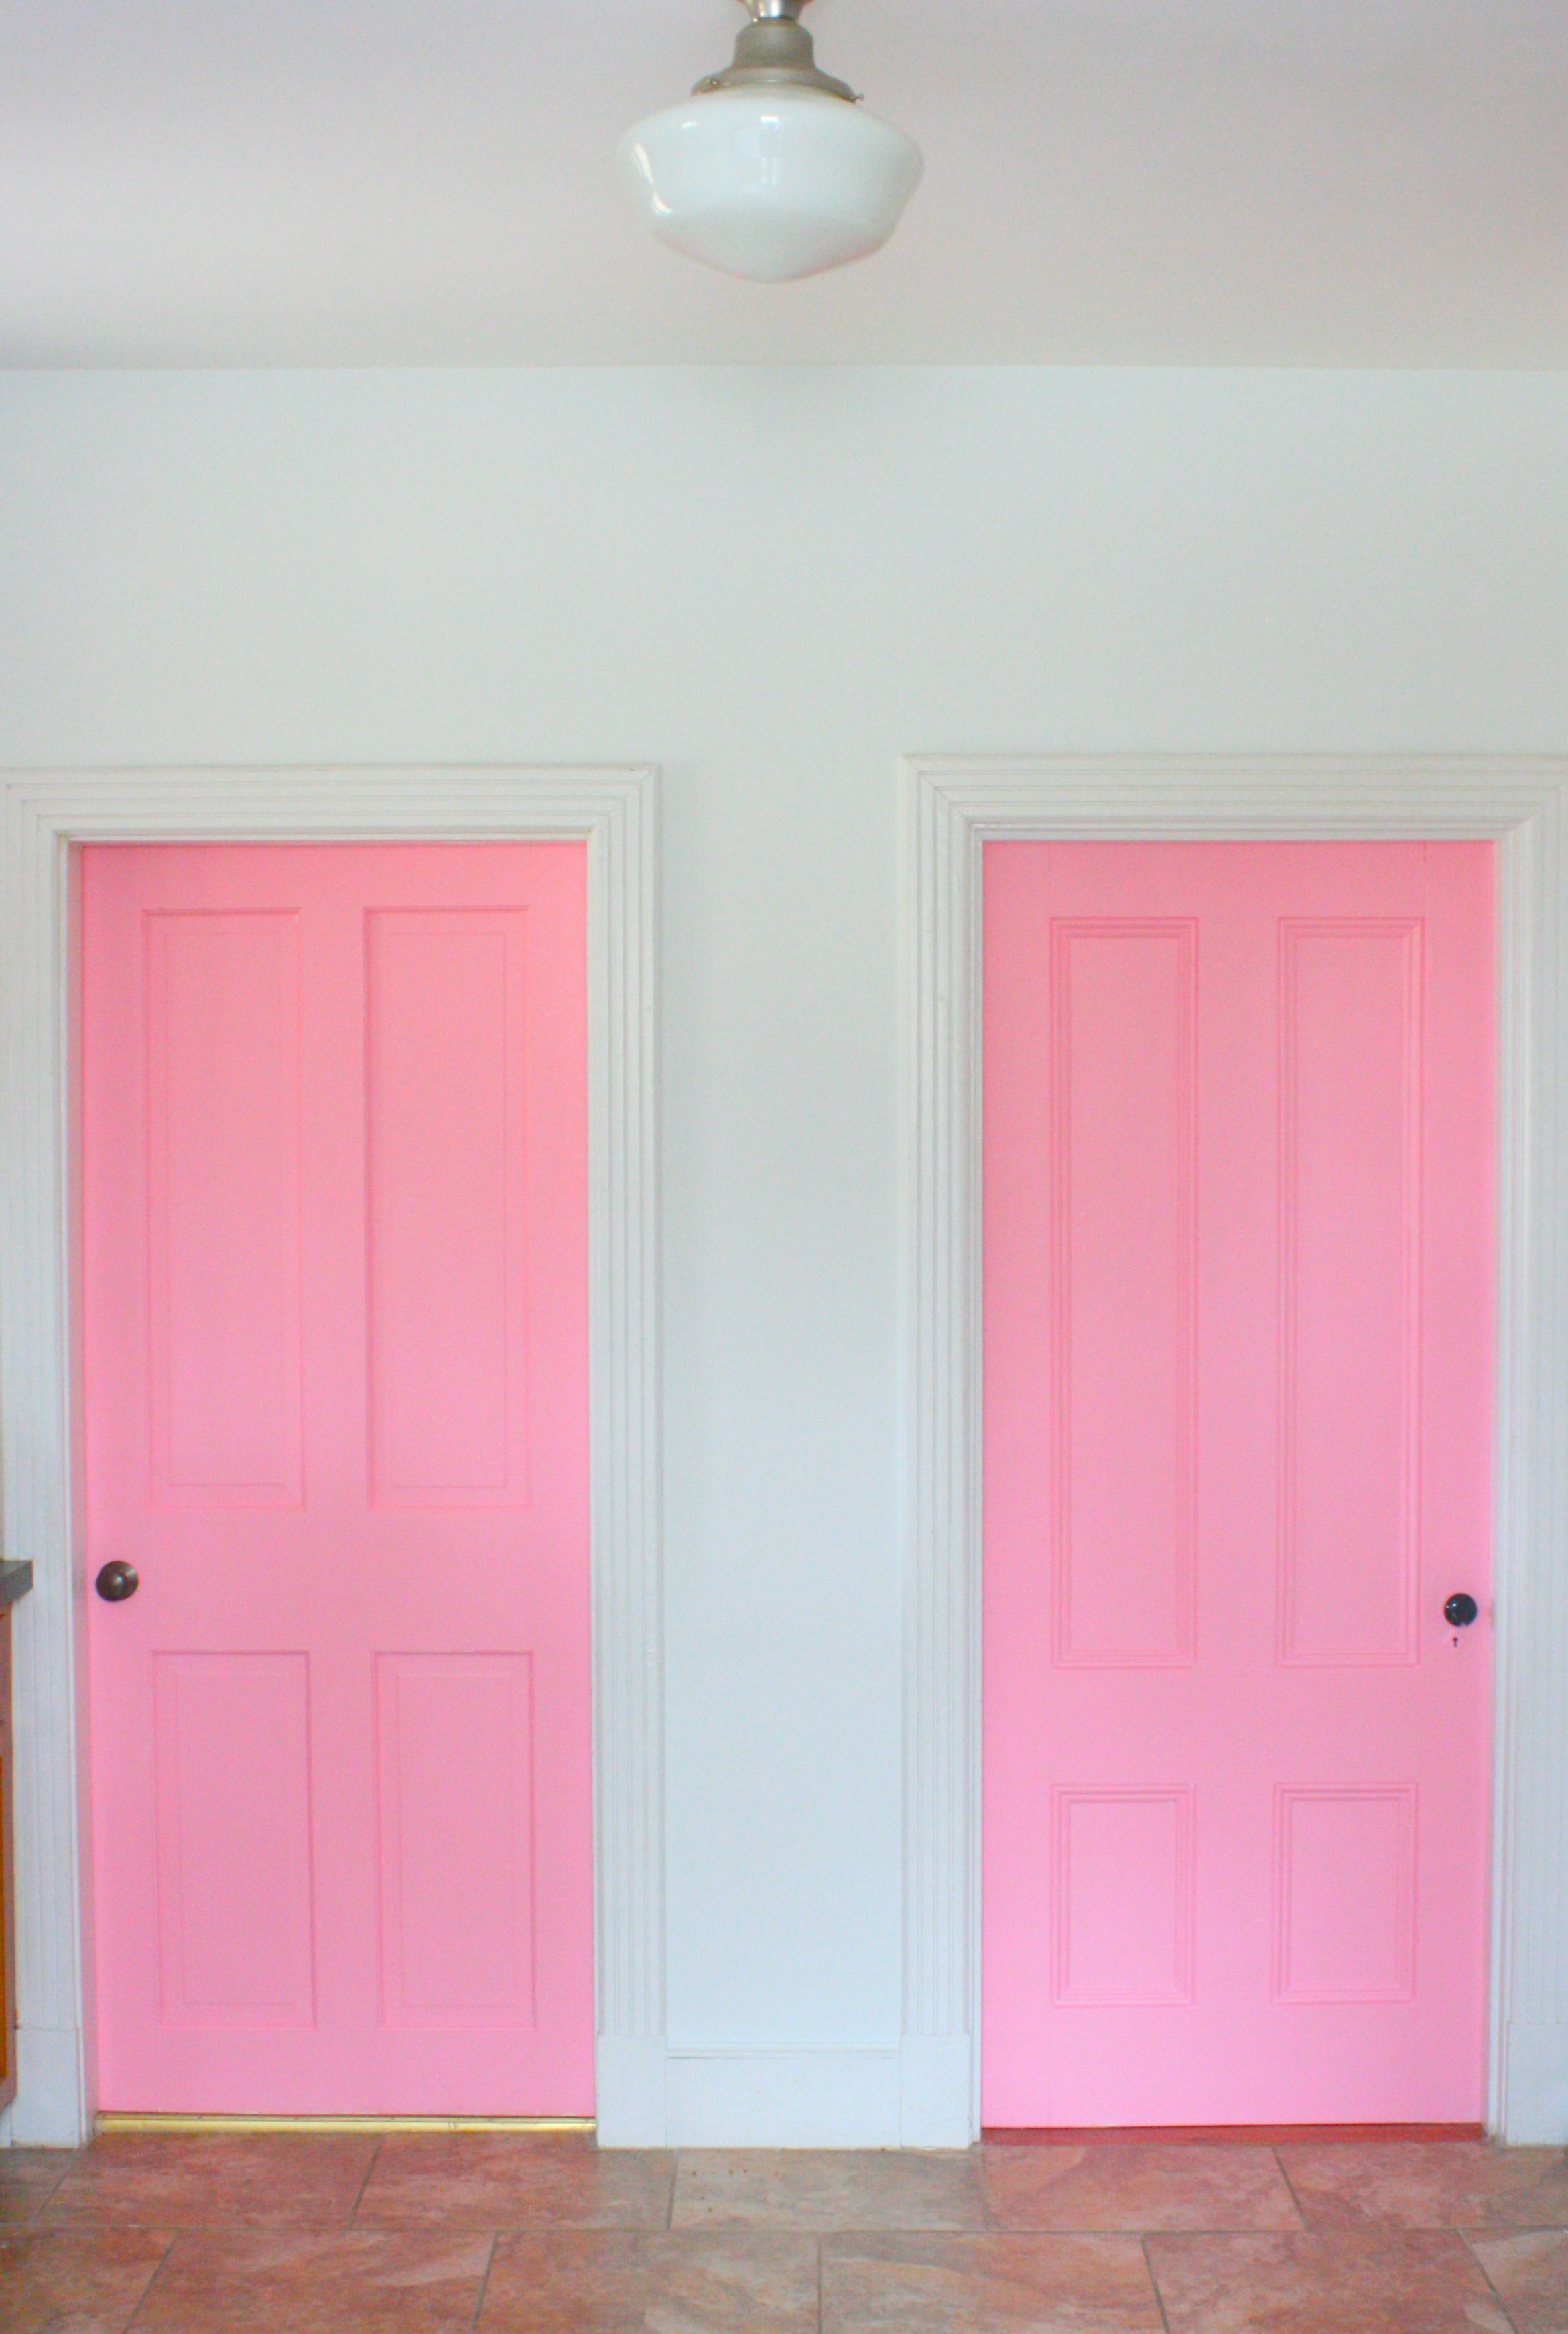 Spotted: Valspar Paint In Pink Flutter 1005-2A. Perfectly